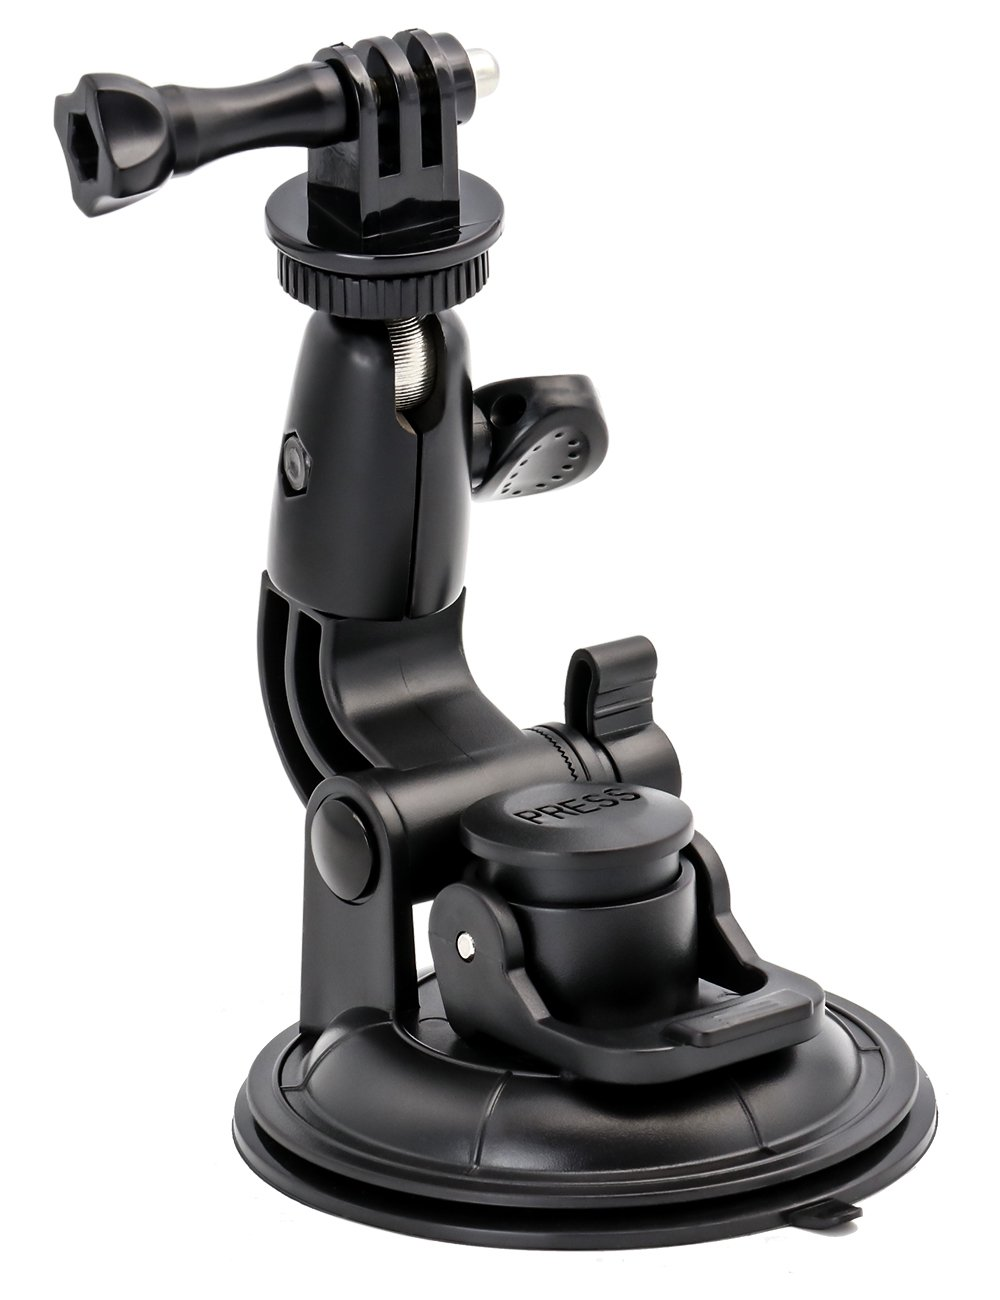 Big Suction Cup Mount for Gopro